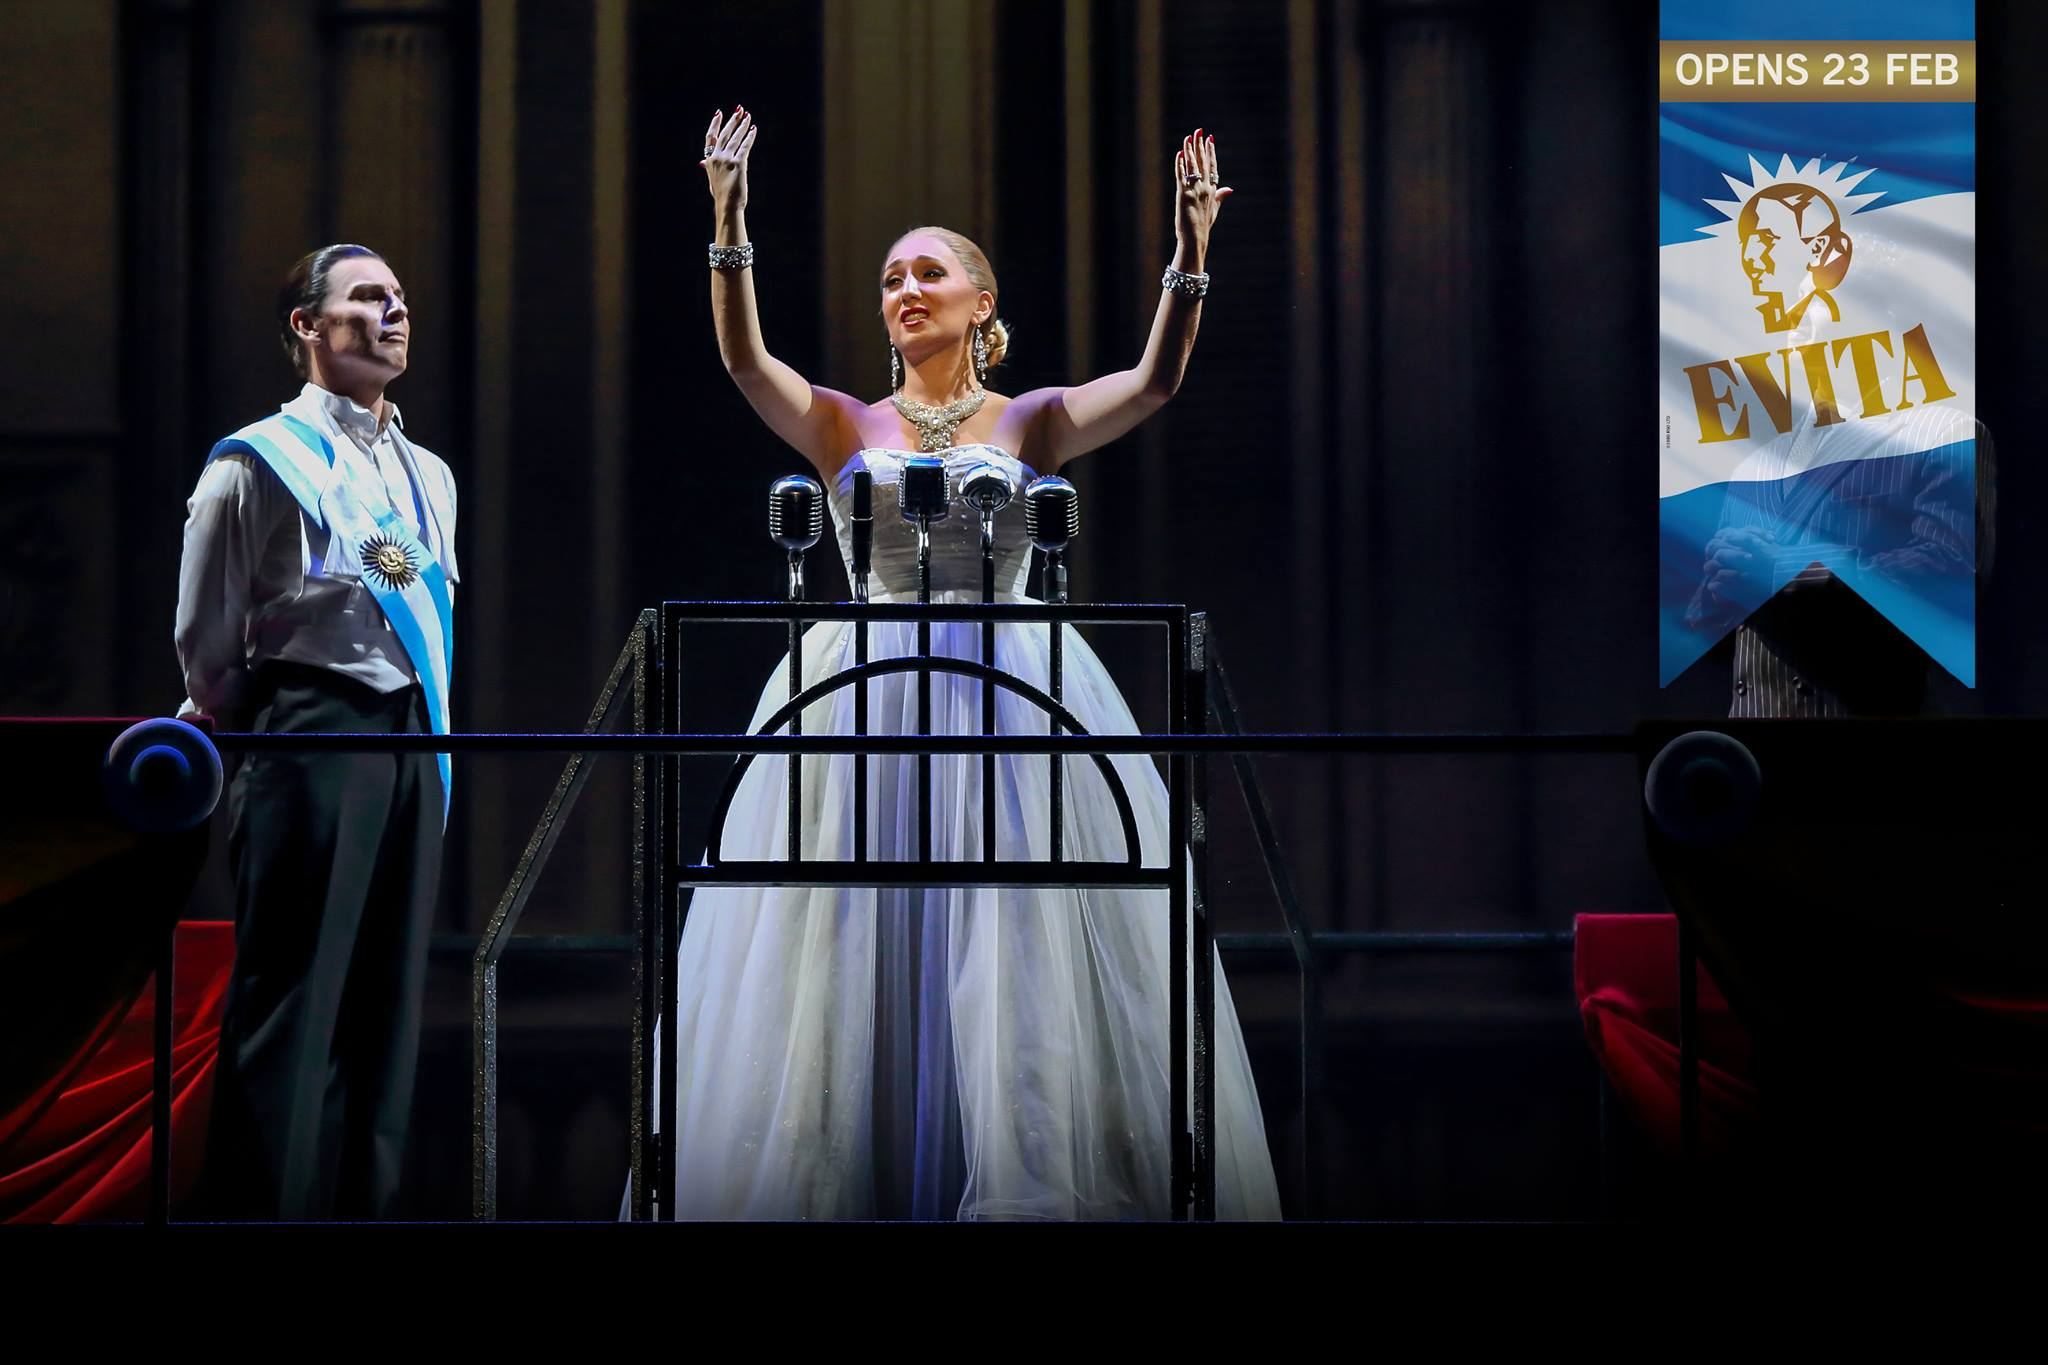 EVITA - The Musical LIVE in Singapore